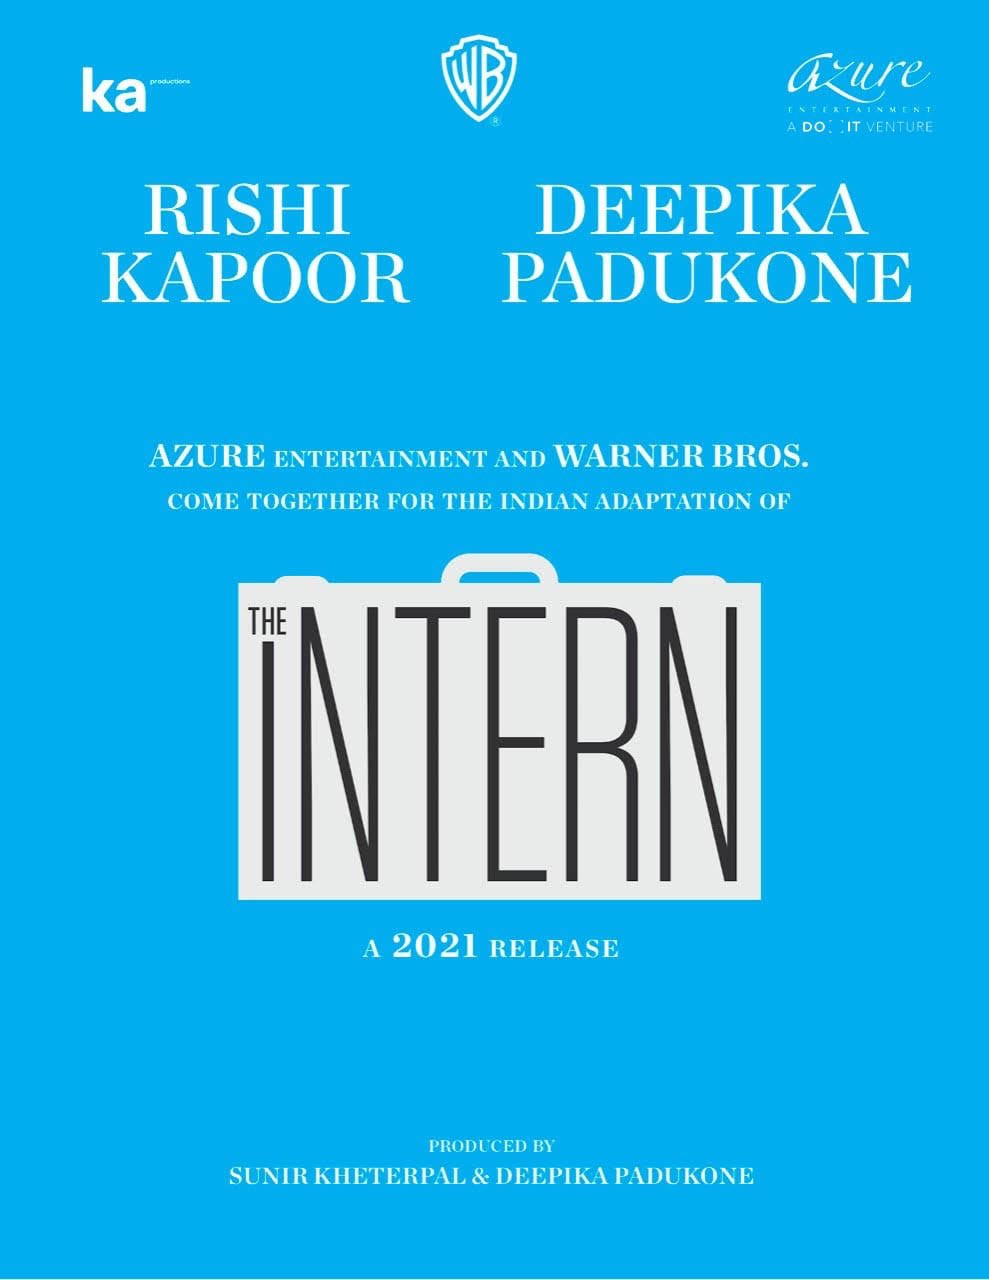 The Bollywood Remake of The Intern Cast Deepika Padukone and Rishi Kapoor in the Lead